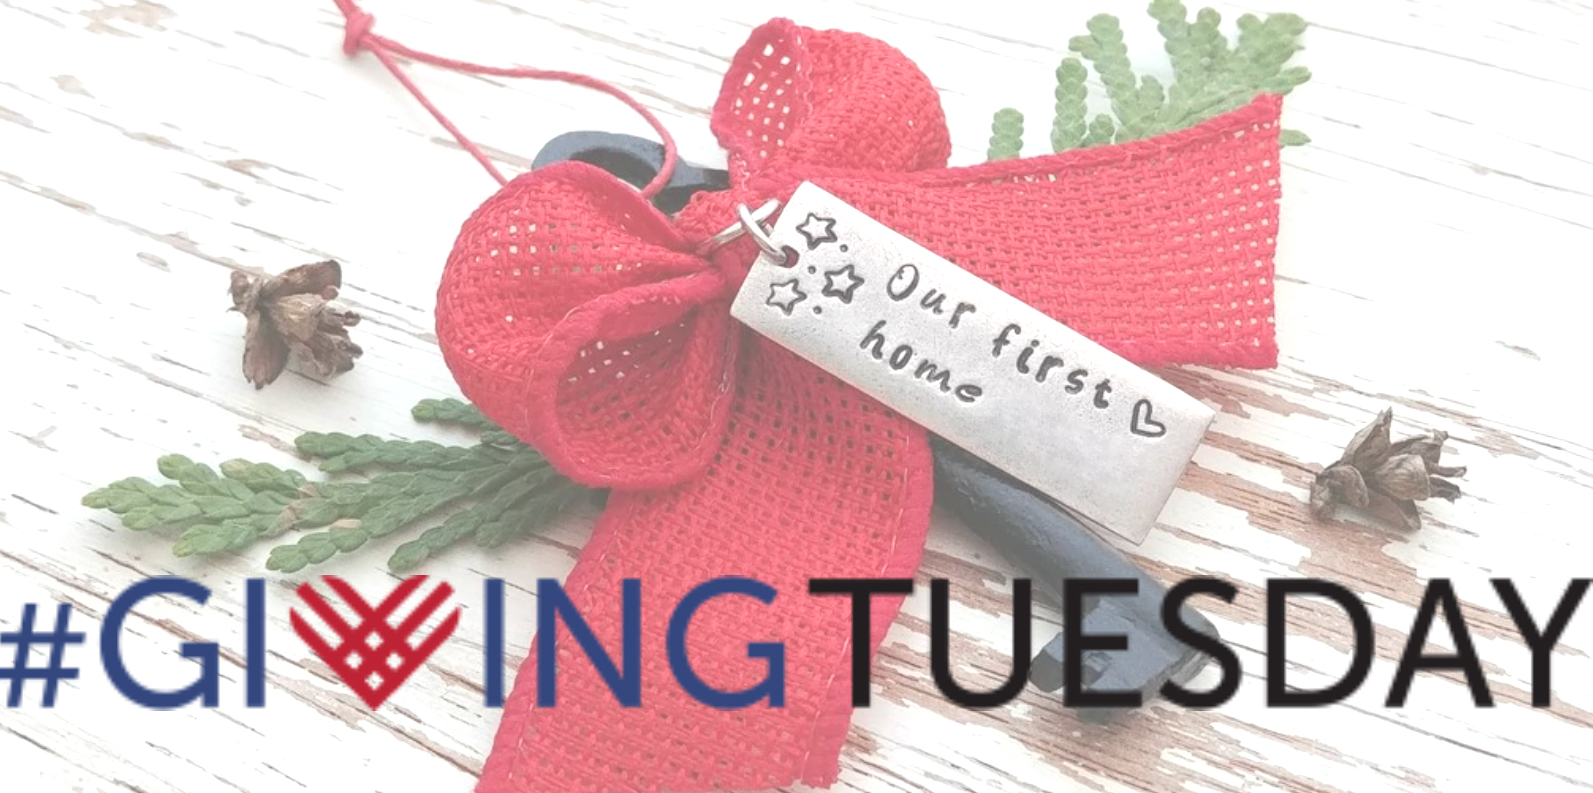 You Can be the Key on #GivingTuesday